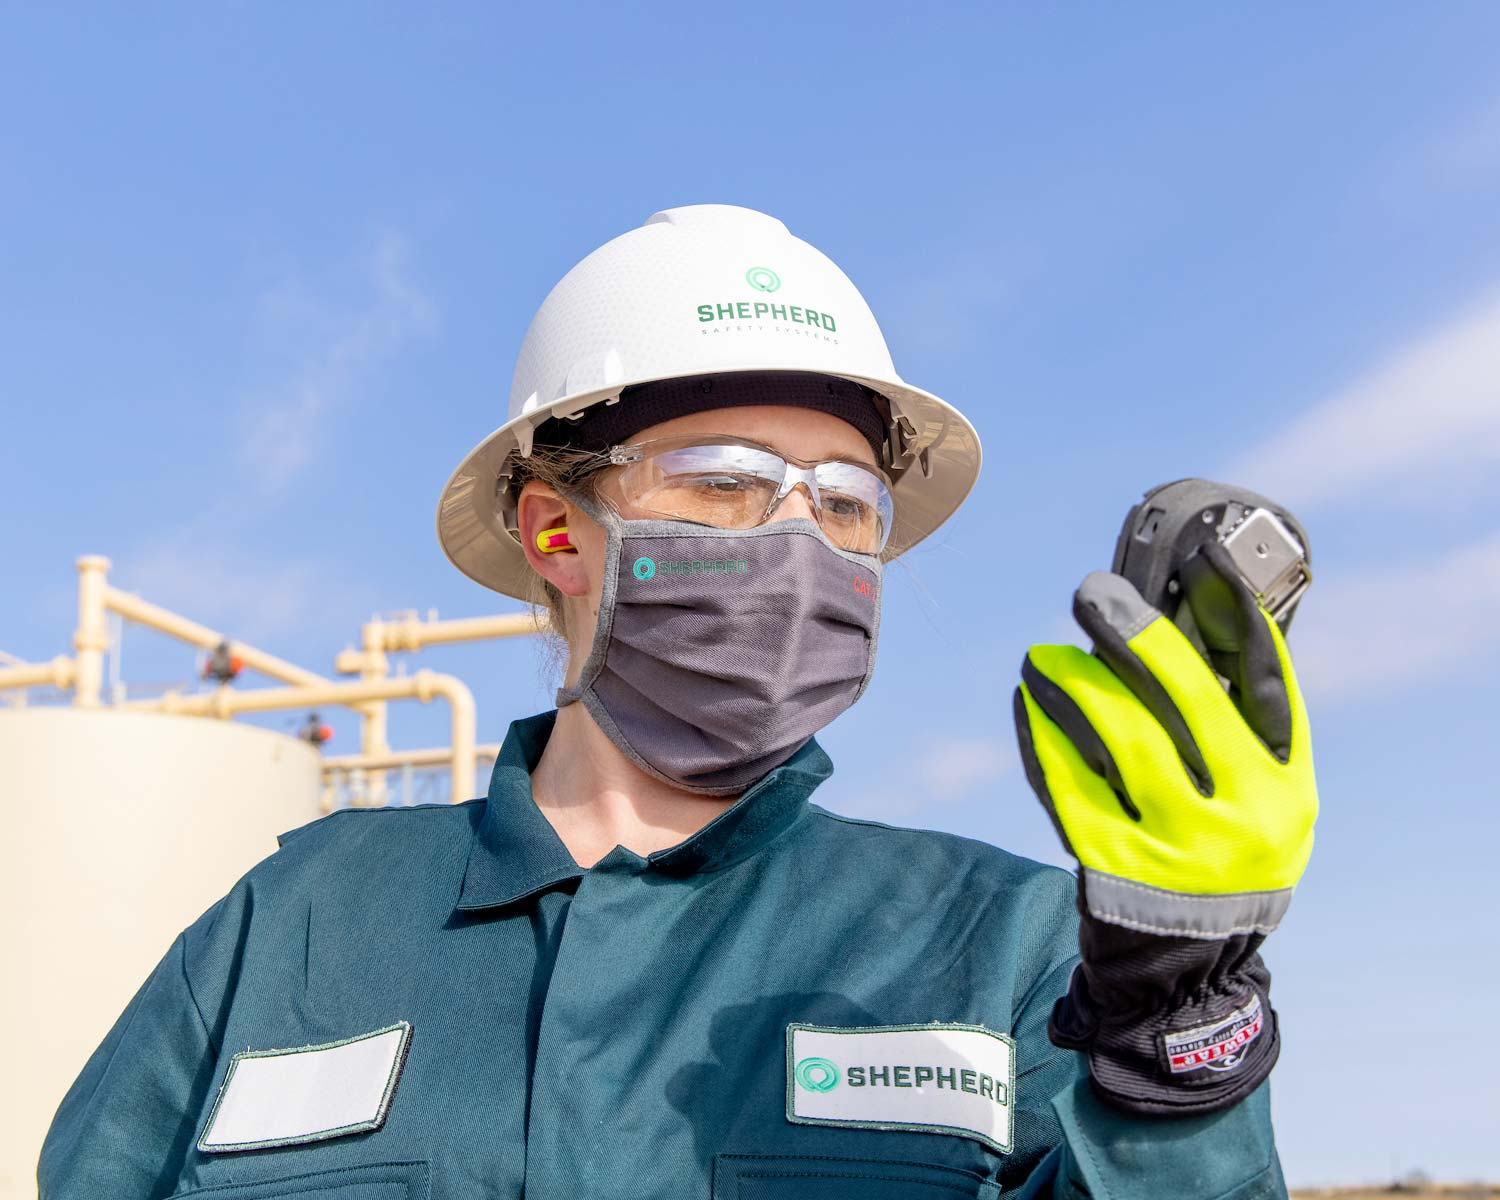 A shepherd worker monitors gas levels through a shepherd safety systems device